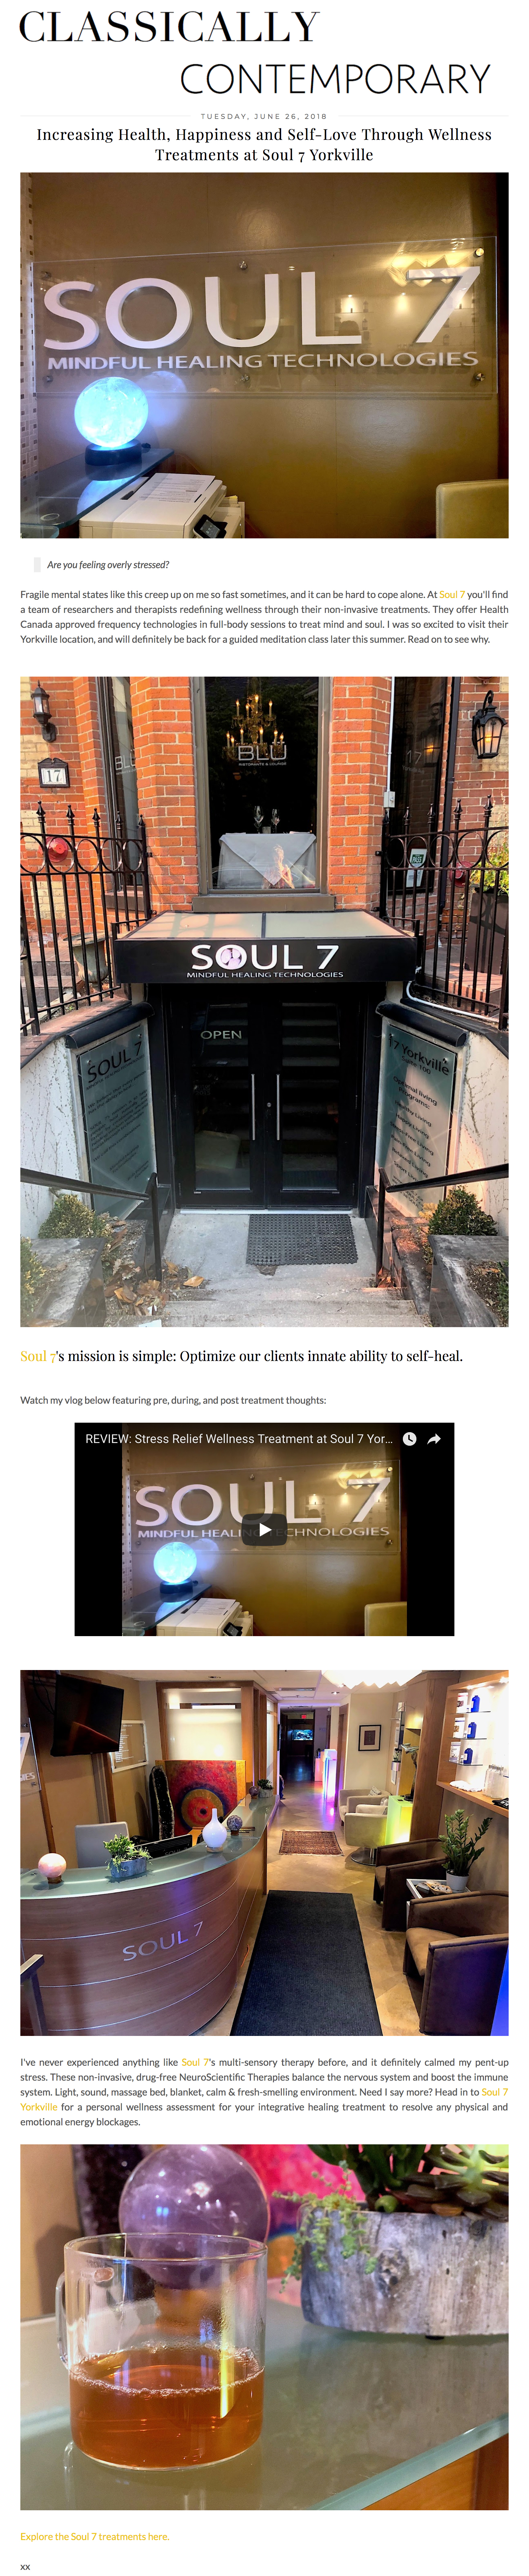 Soul7 featured in  Classically Contemporary .